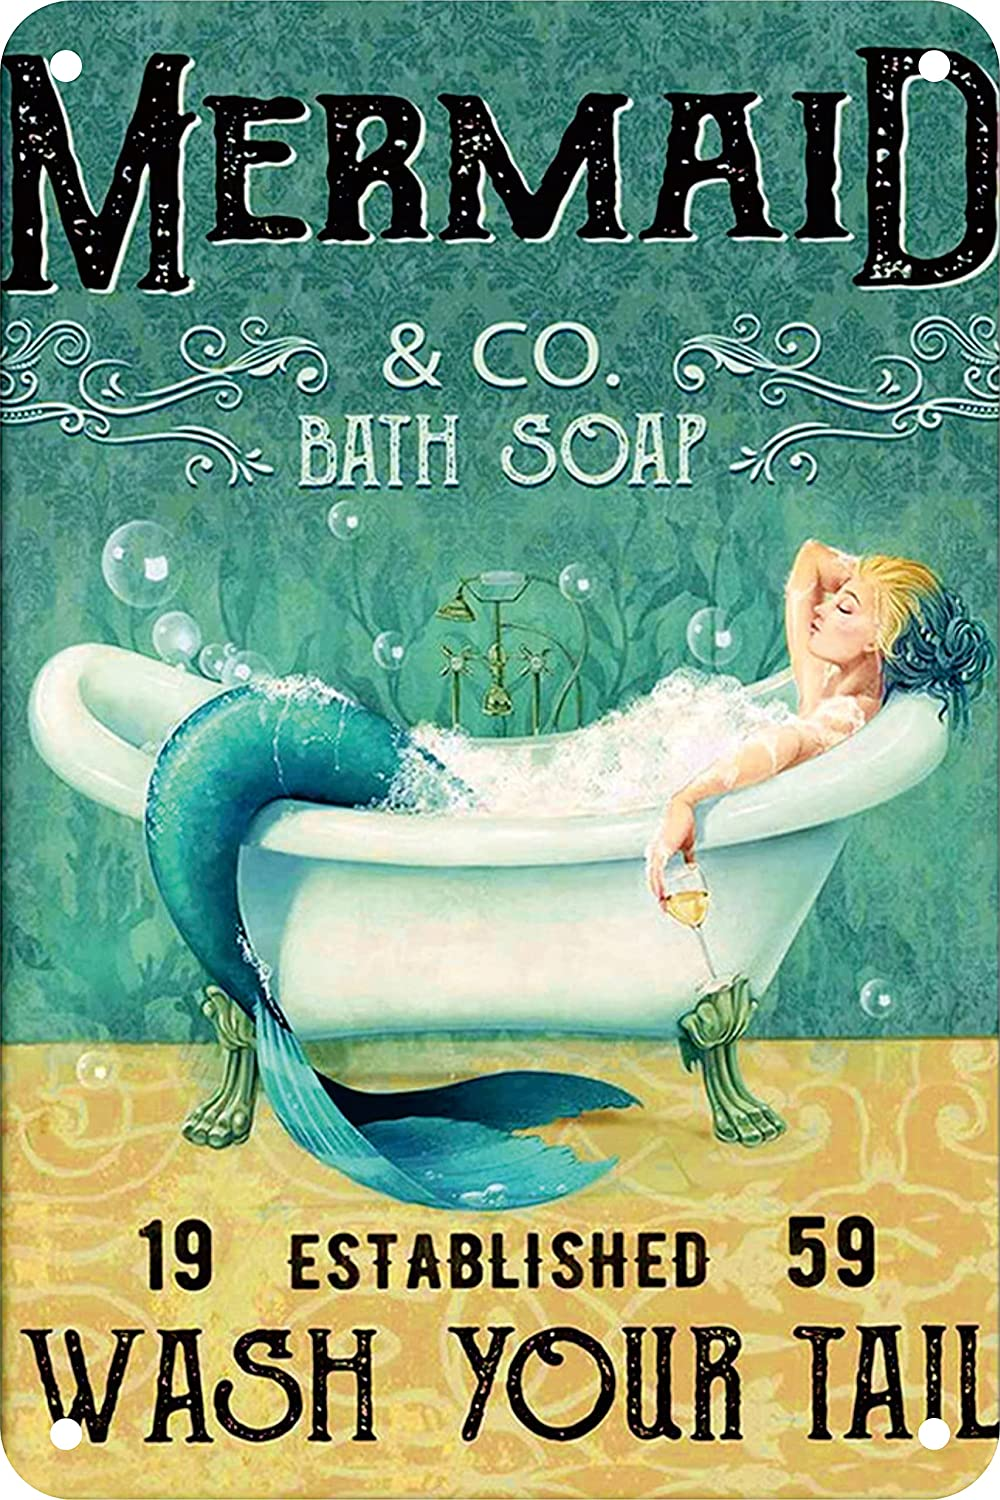 Mermaid Decor Gifts Funny Bathroom Decor Wall Art Coffee Bar Vintage Metal Tin Sign - Wash Your Tail - Office Home Toilet Signs Wall Decor Pictures 8 X 12 Inch